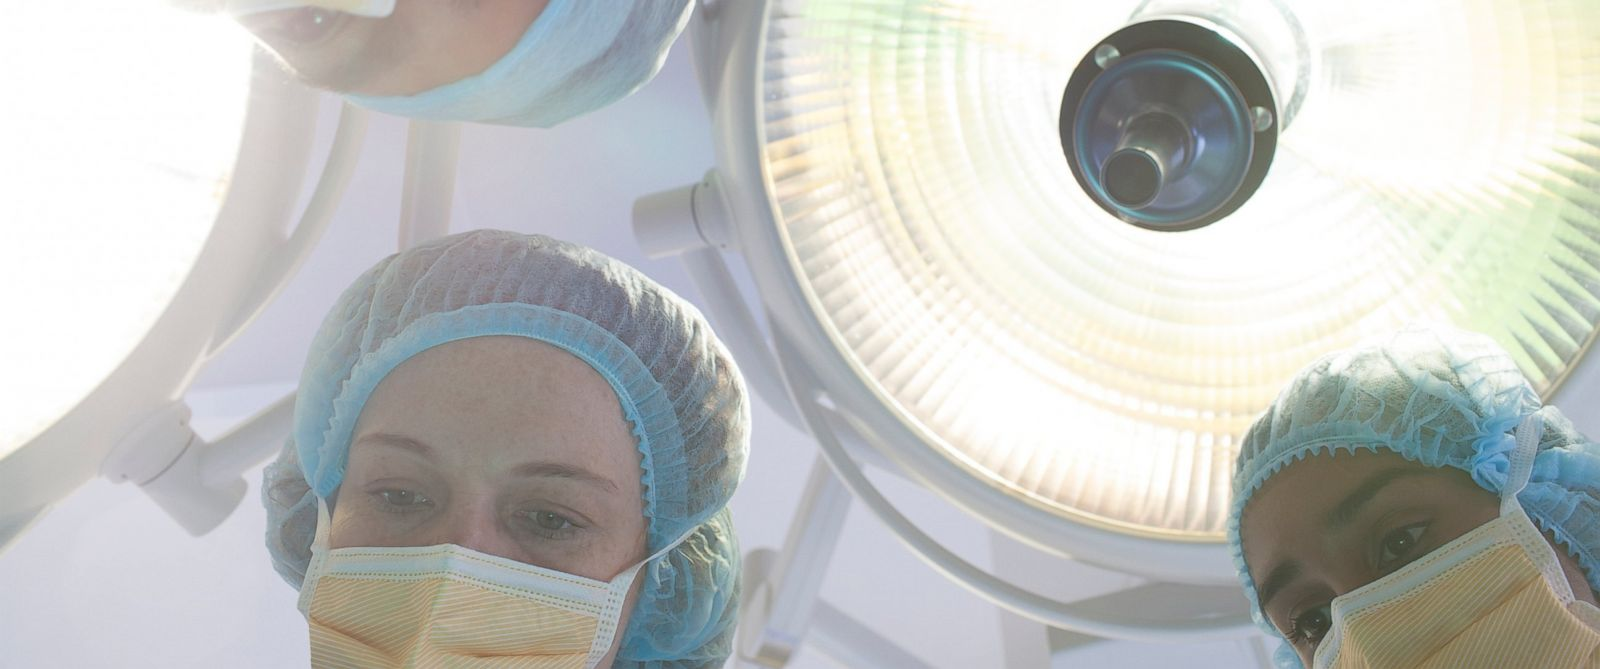 PHOTO: Lights above on operating table.